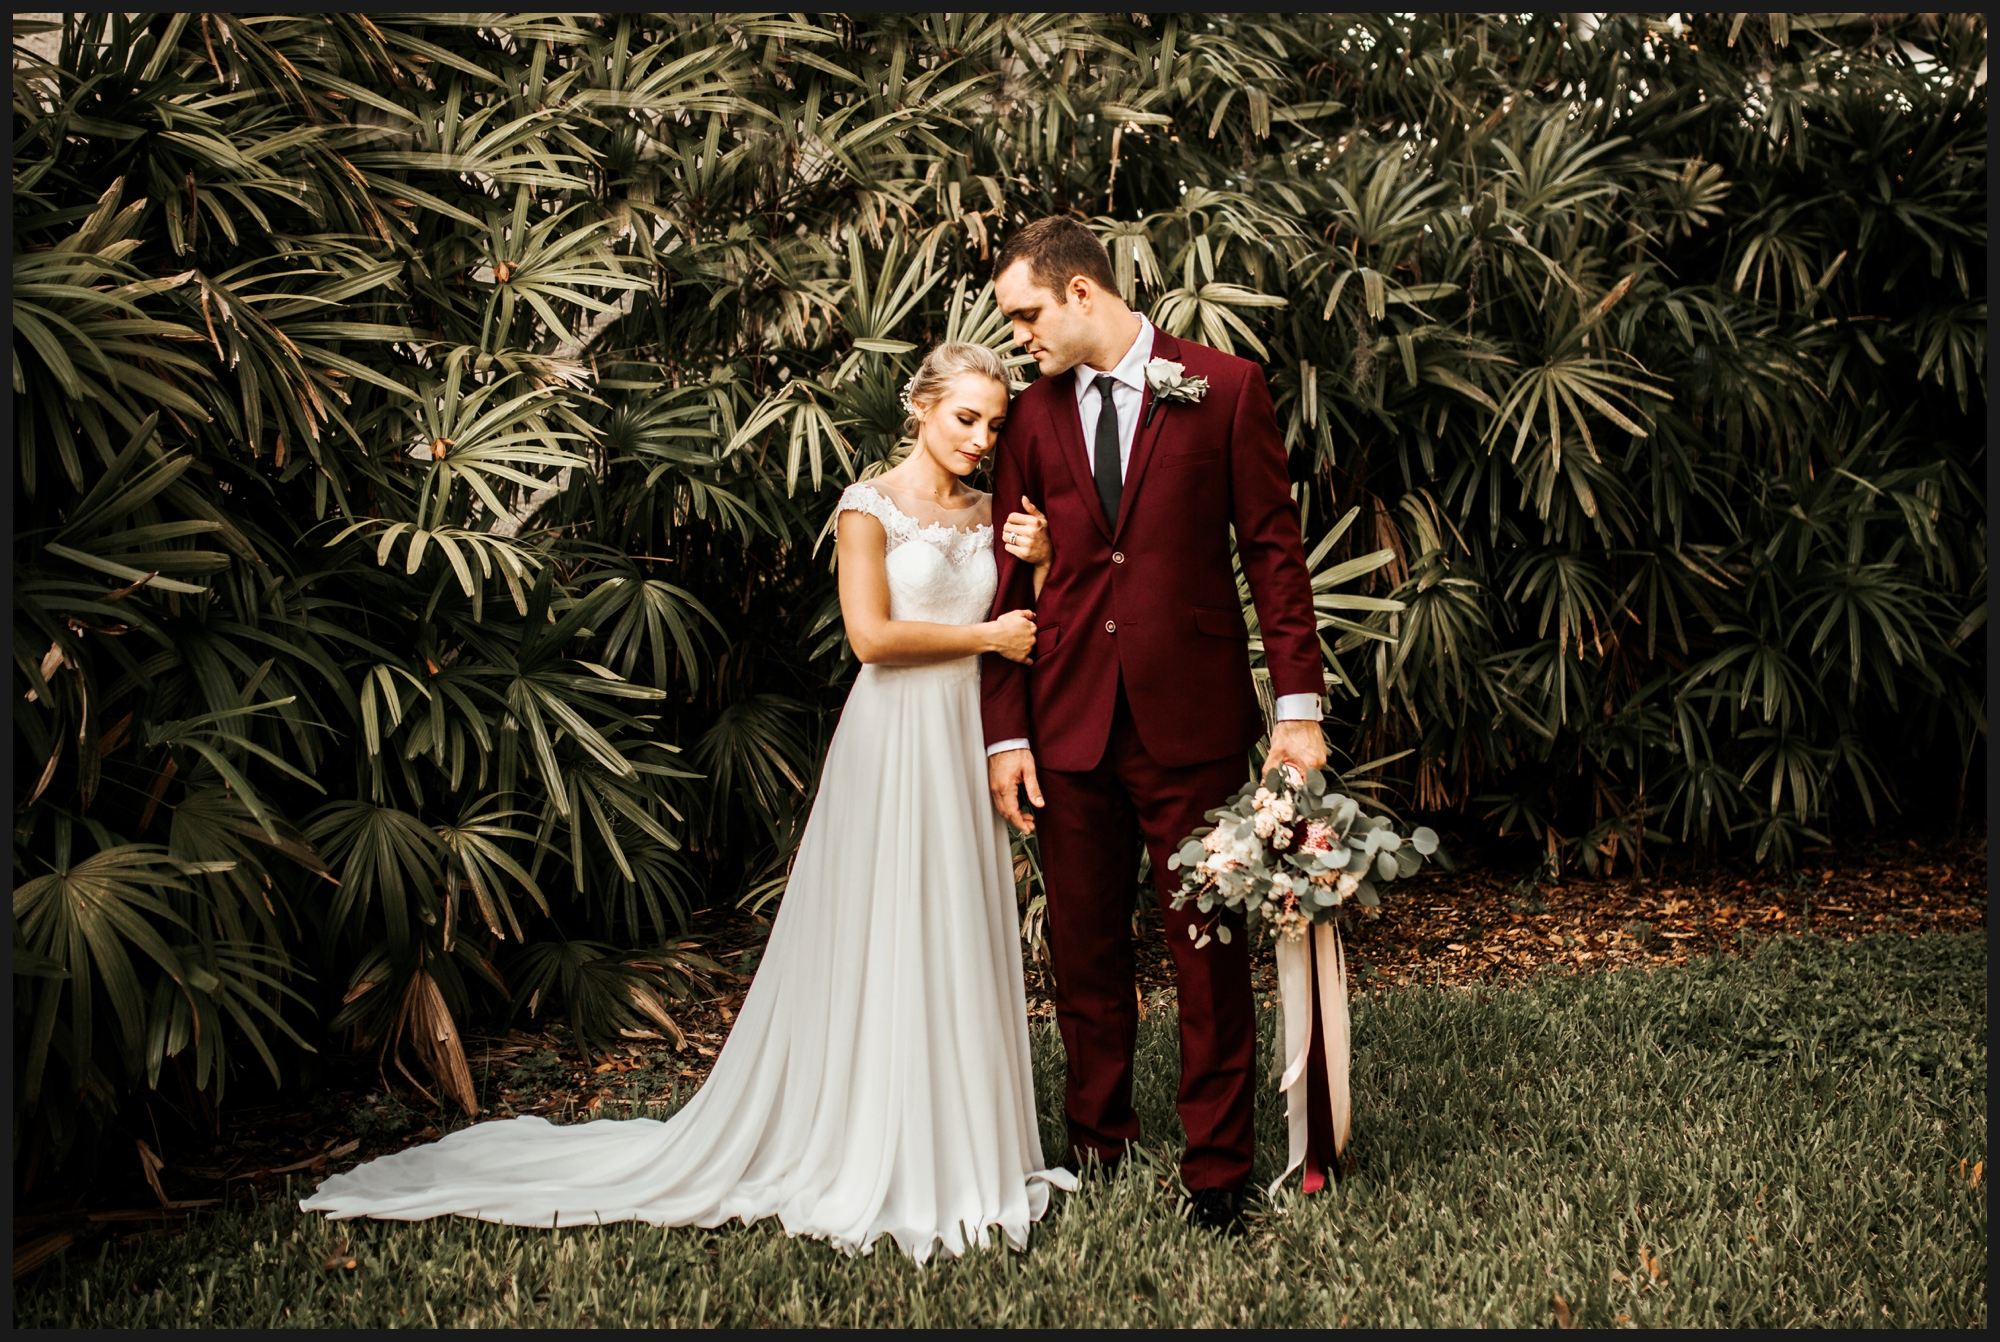 Orlando-Wedding-Photographer-destination-wedding-photographer-florida-wedding-photographer-bohemian-wedding-photographer_0066.jpg